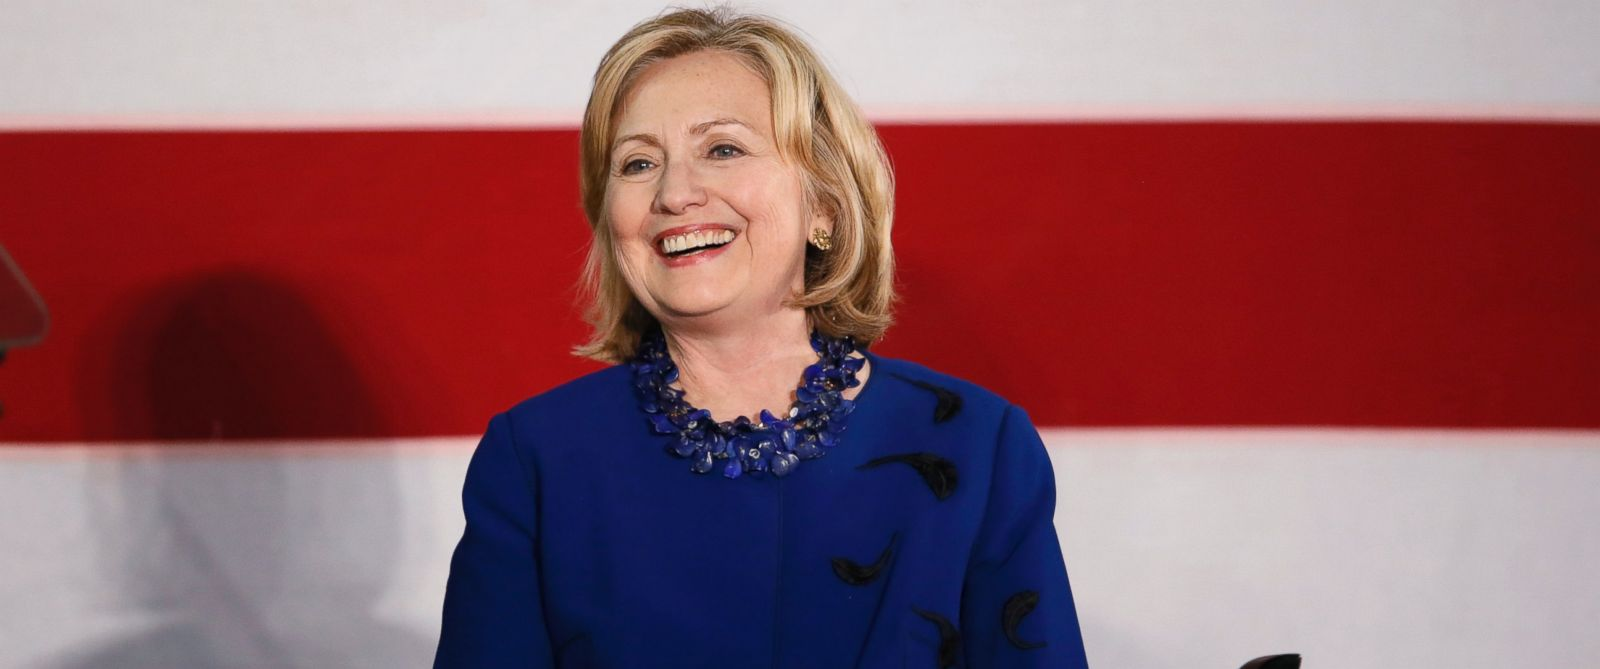 PHOTO: Former U.S. Secretary of State Hillary Rodham Clinton speaks at a rally for Senate candidate Gary Peters and gubernatorial candidate Mark Schauer at Oakland University in Auburn Hills, Mich., Oct. 16, 2014.